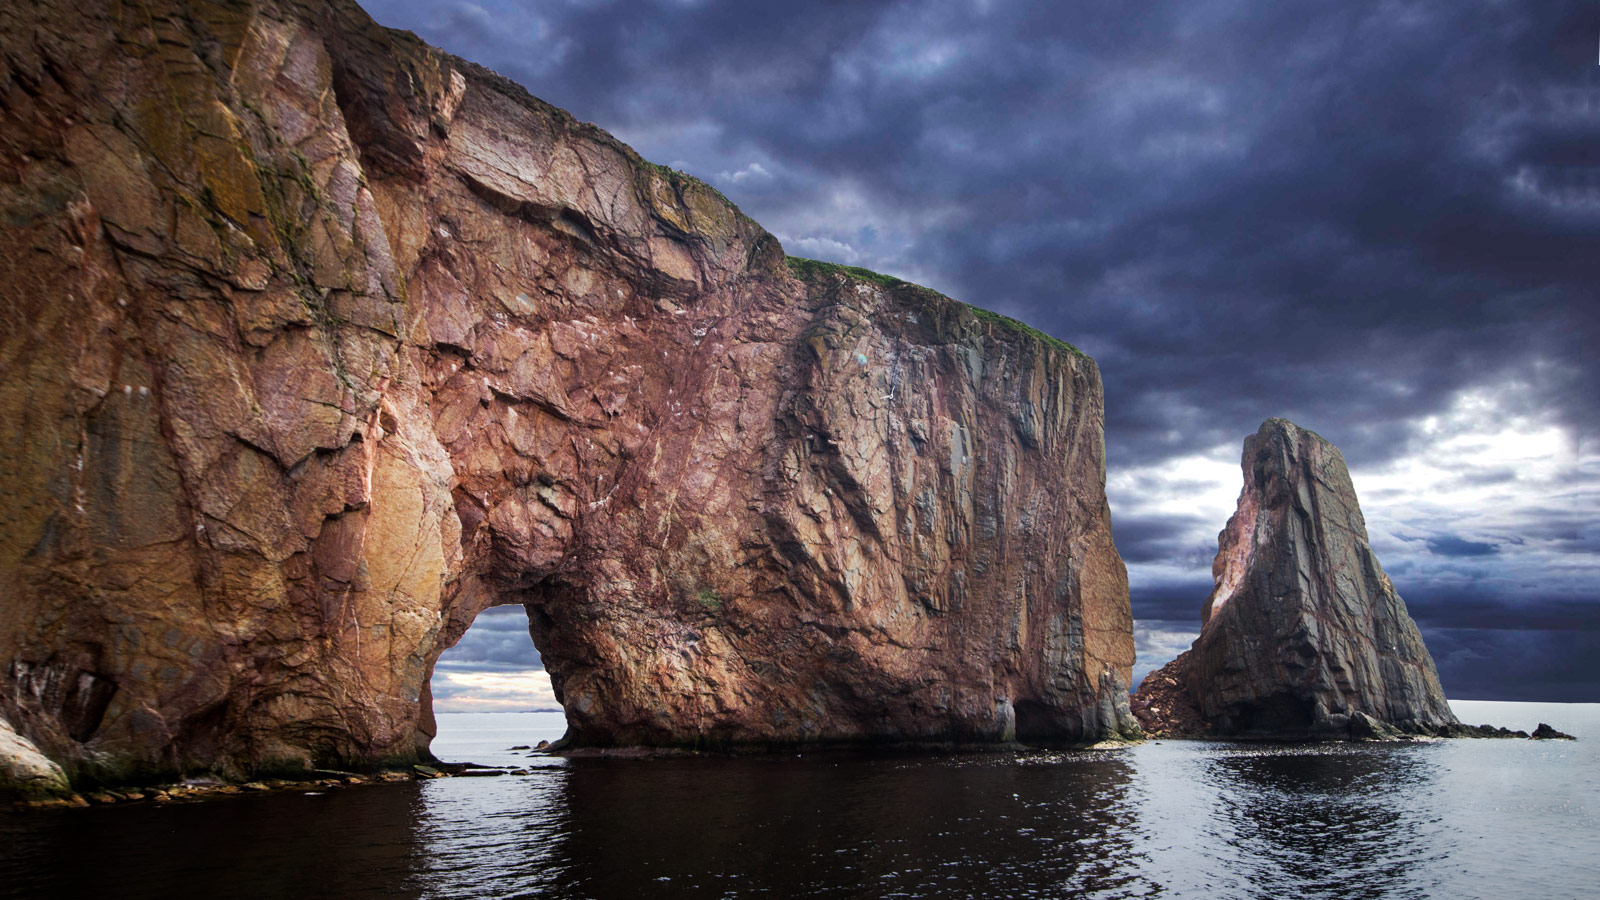 Perce Rock on the Gaspe peninsula stands dramatically out from the gulf of St. Lawrence